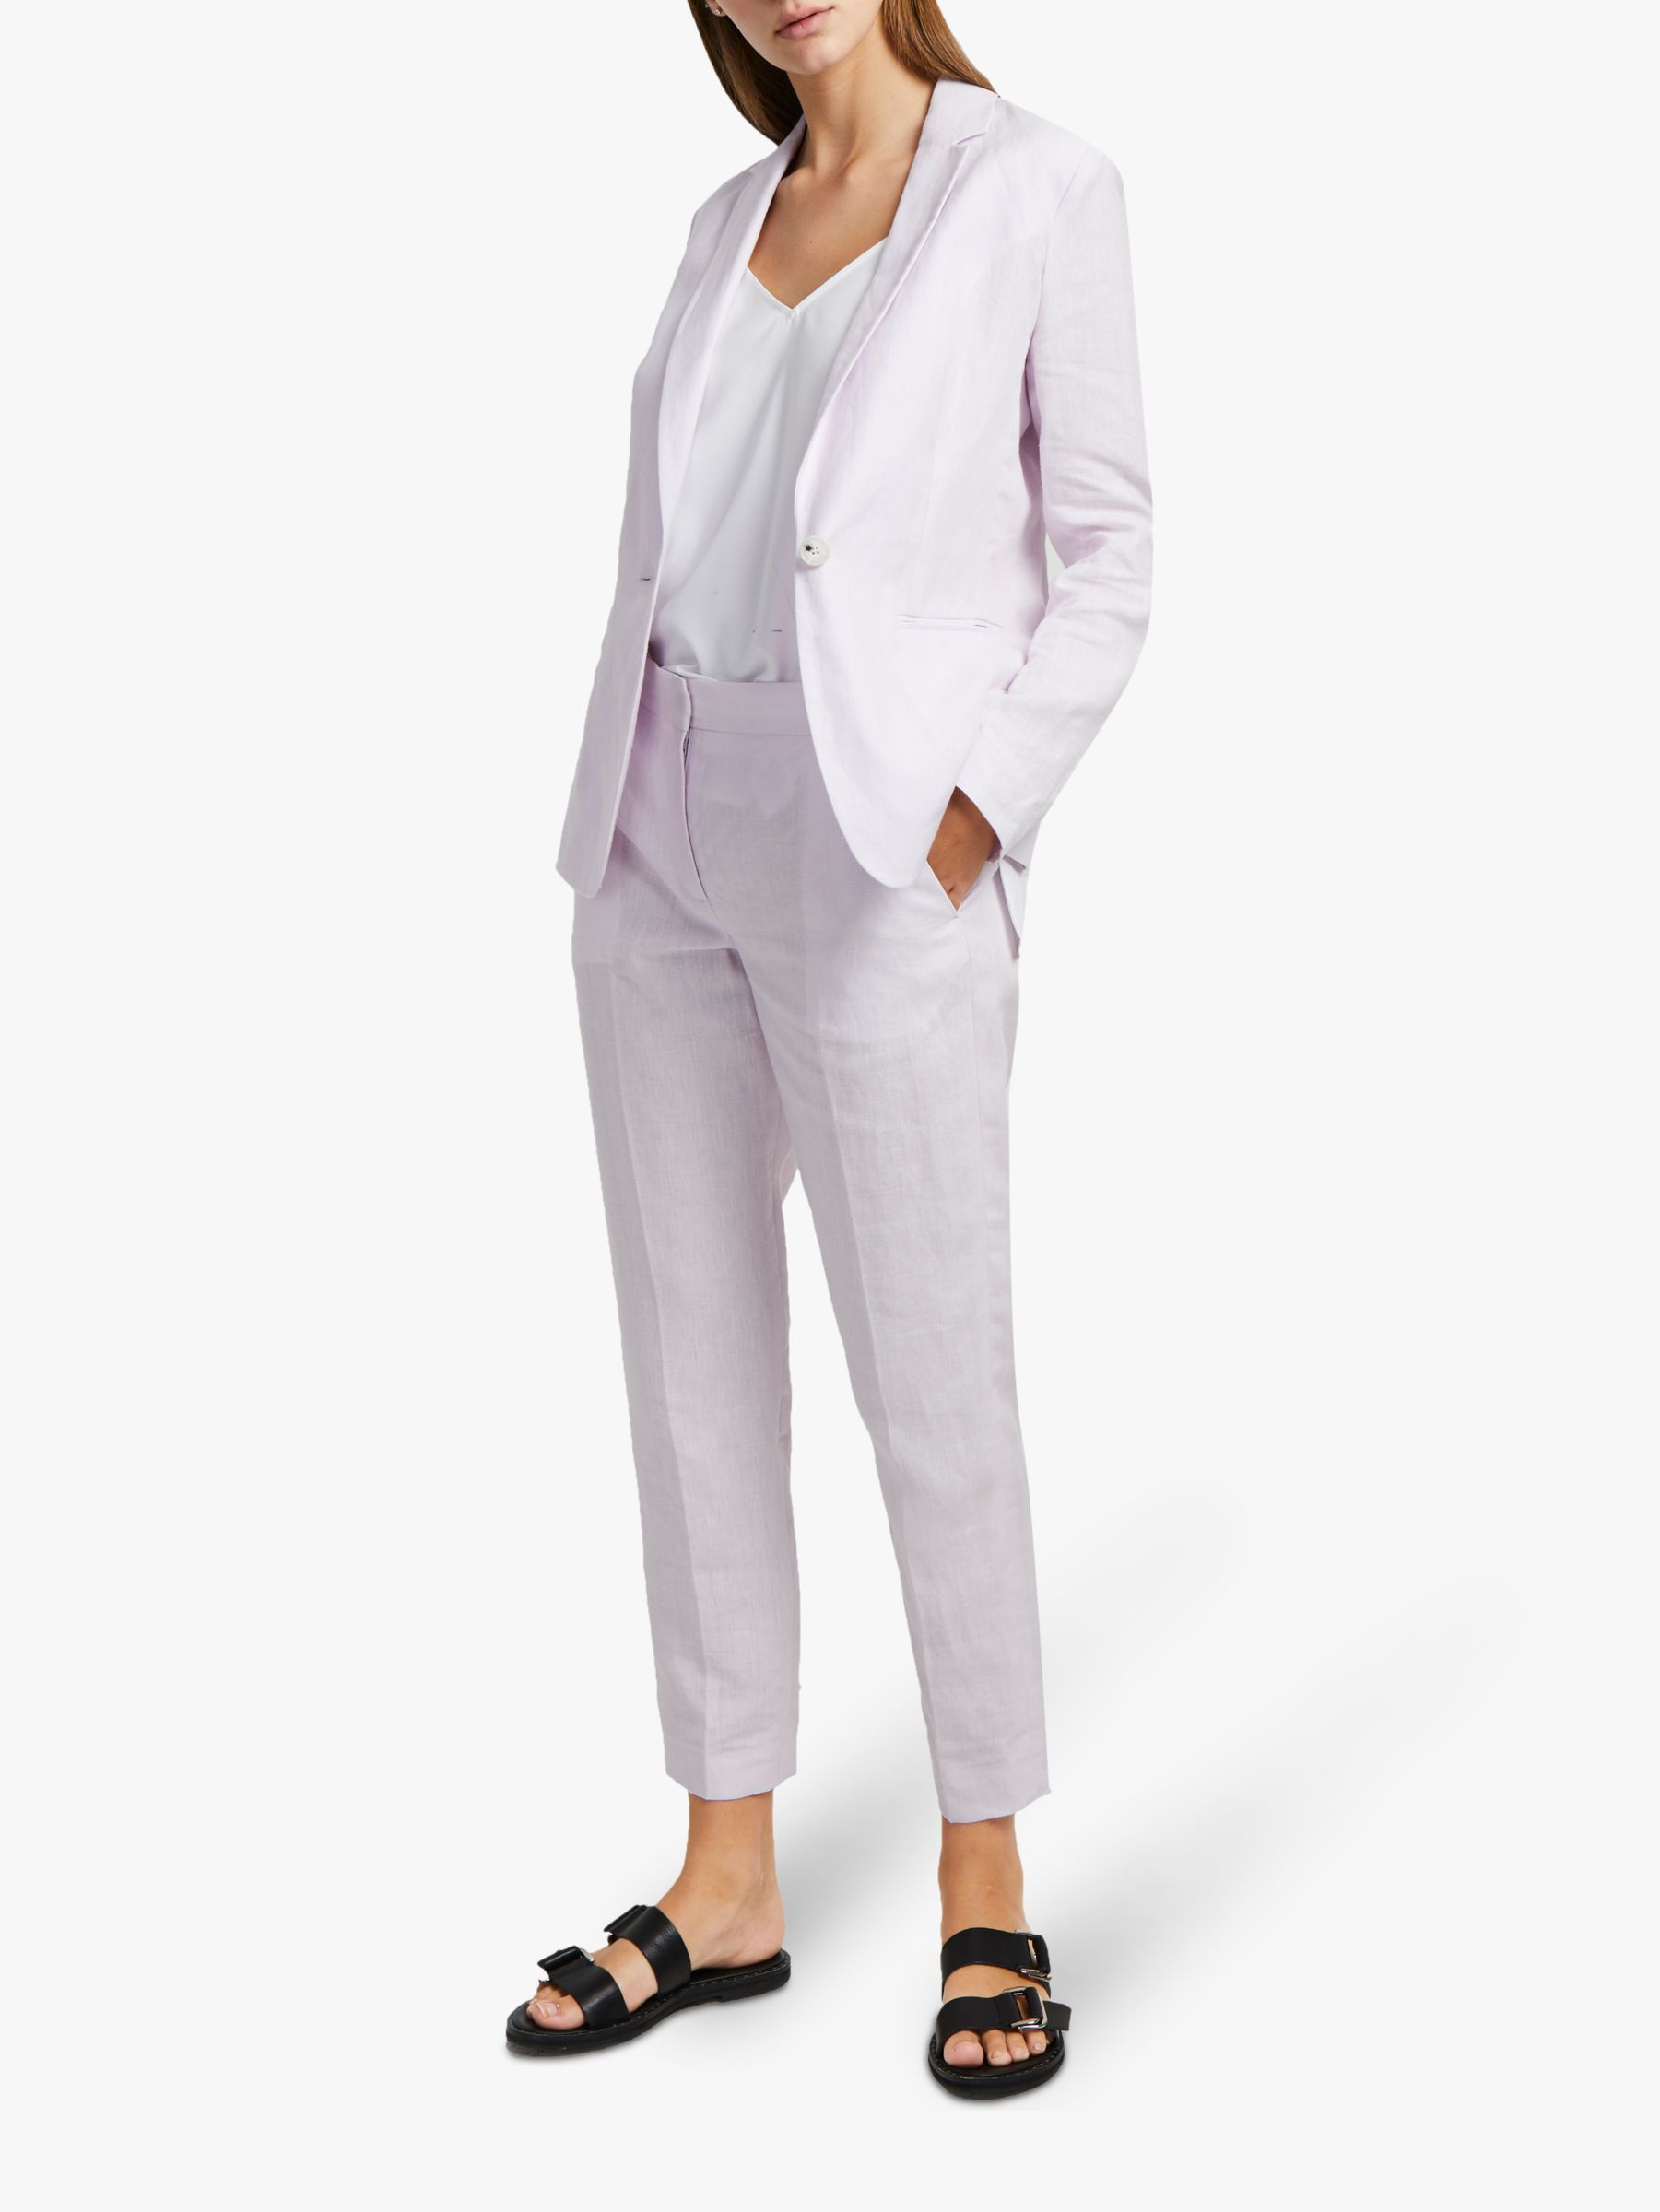 French Connection French Connection Dina Linen Single Breasted Jacket, Lavender Frost